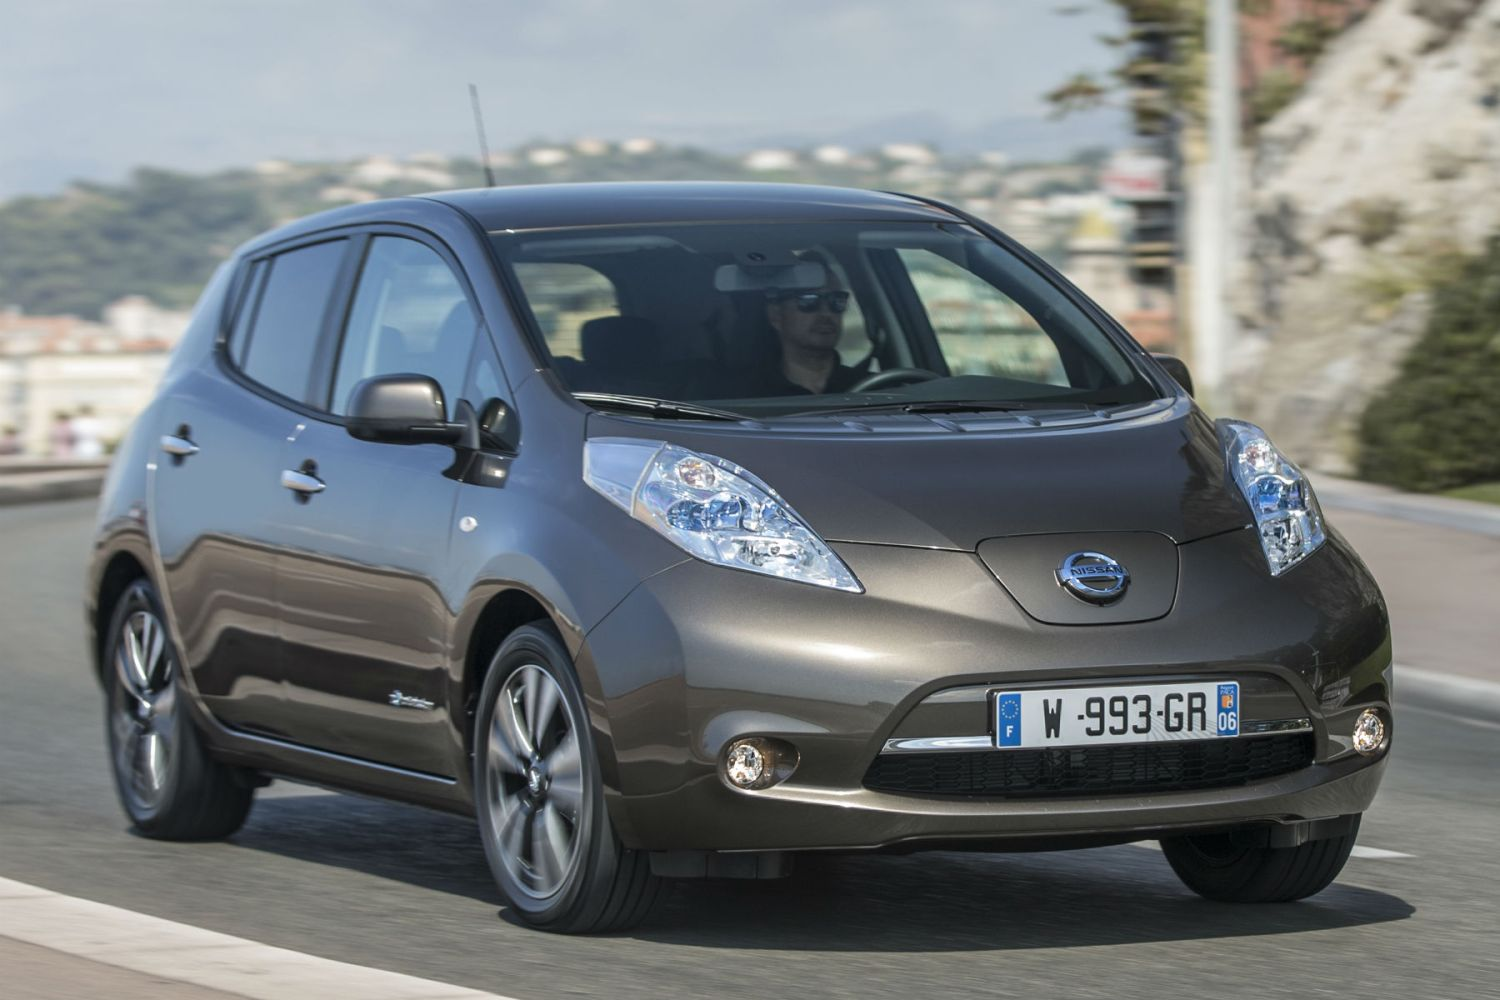 Nissan Leaf 30kWh review: 2015 first drive